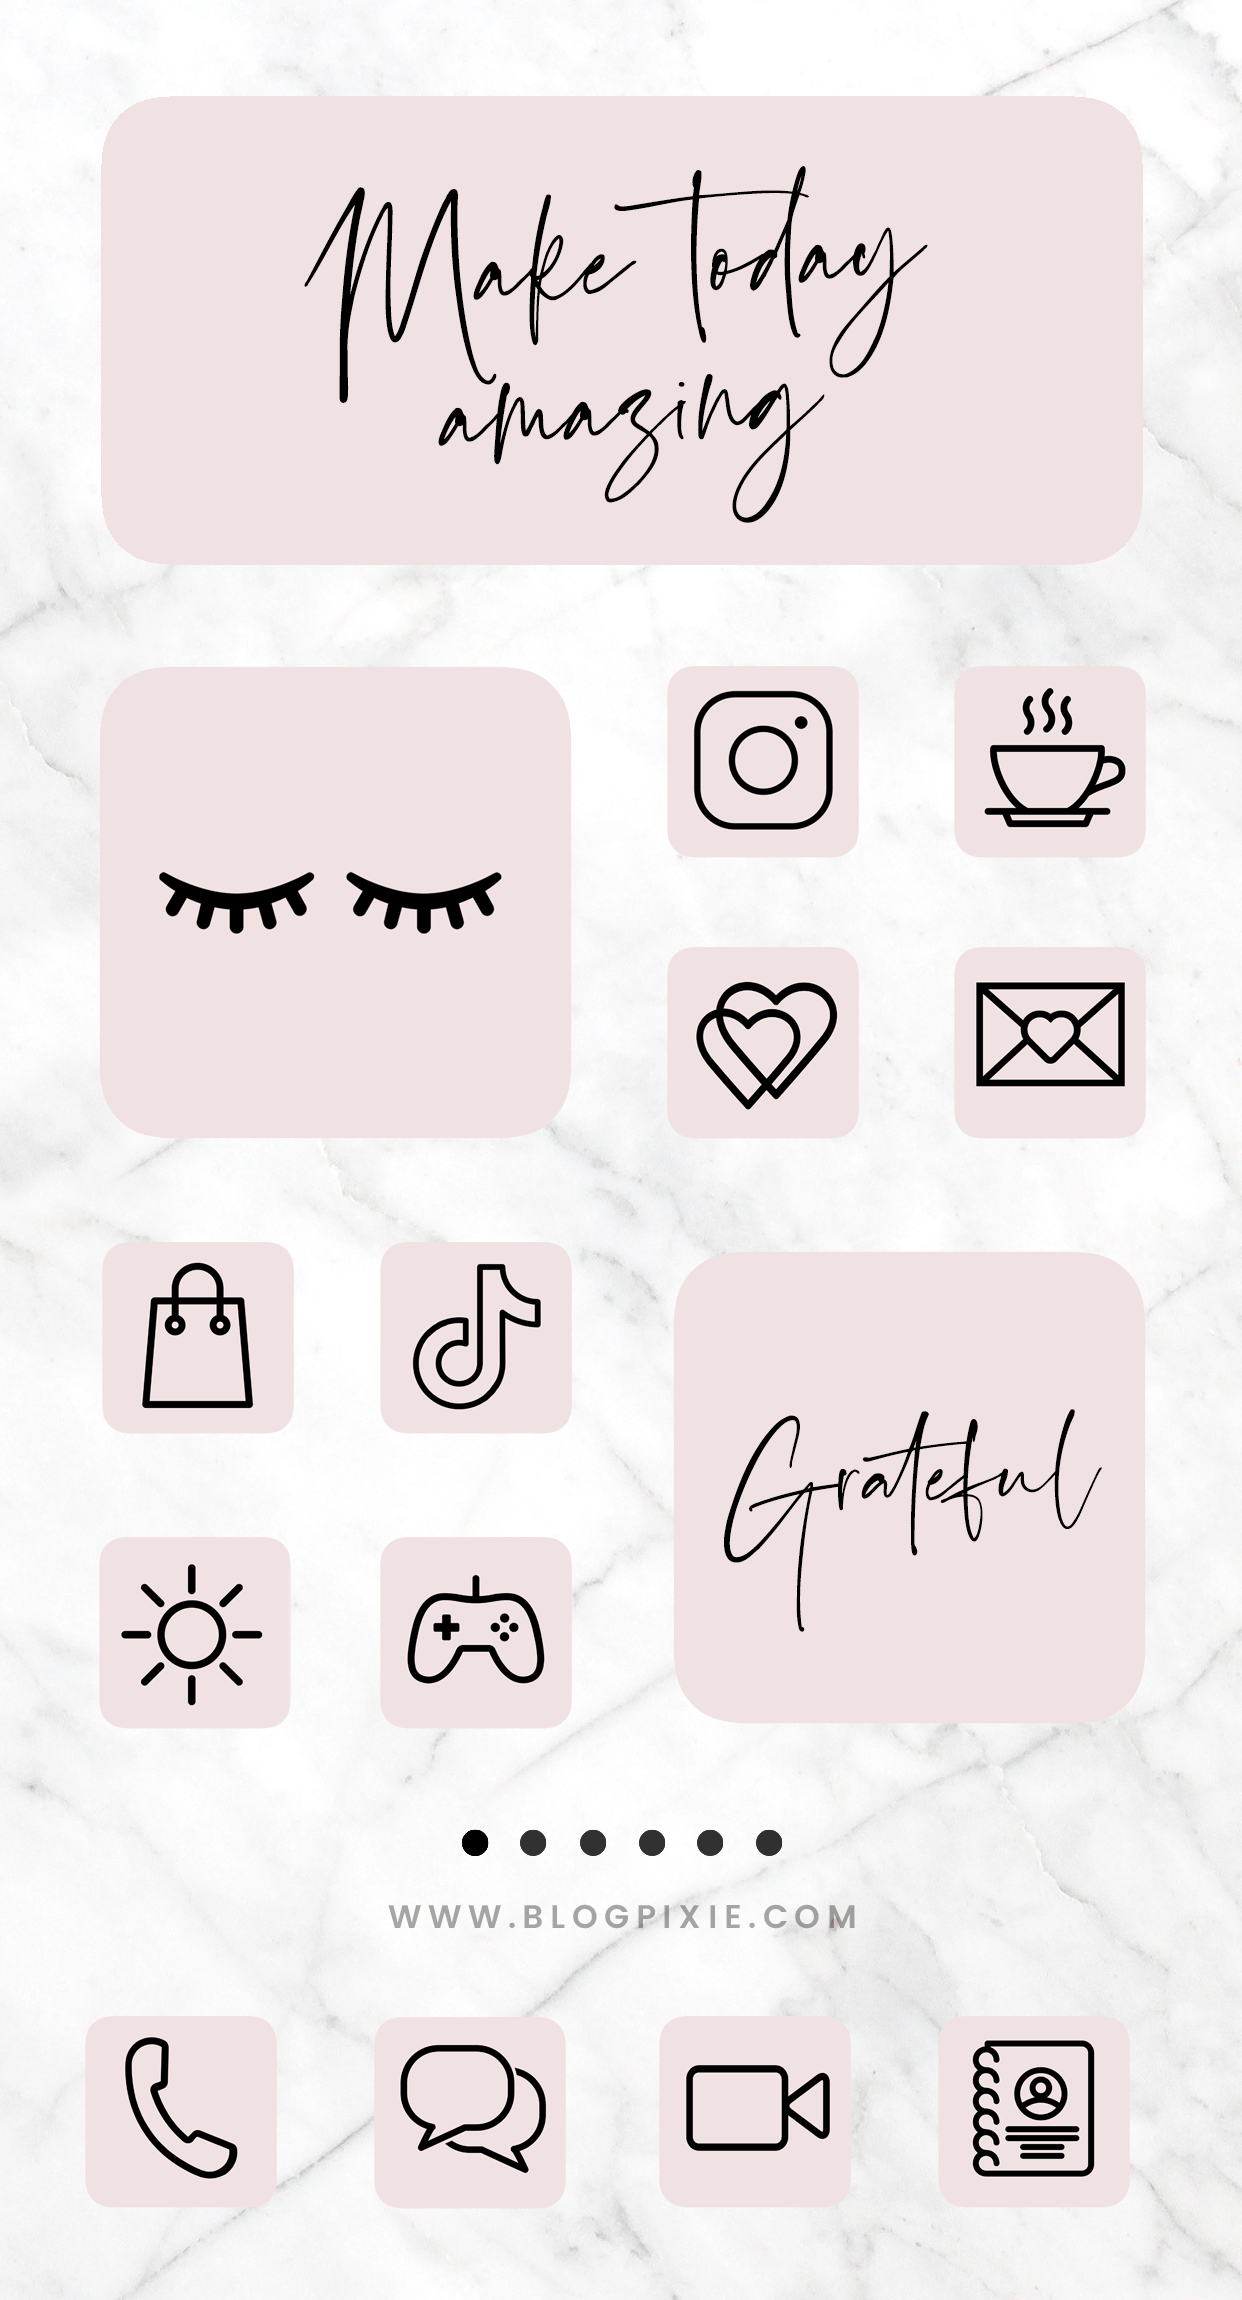 App Icons Ios 14 Pink Black Aesthetic Icon Pack App Covers Ios 14 Widgets Aesthetic Pink Iphone Home Screen Ios14 Blog Pixie App Icon Iphone Wallpaper App Homescreen